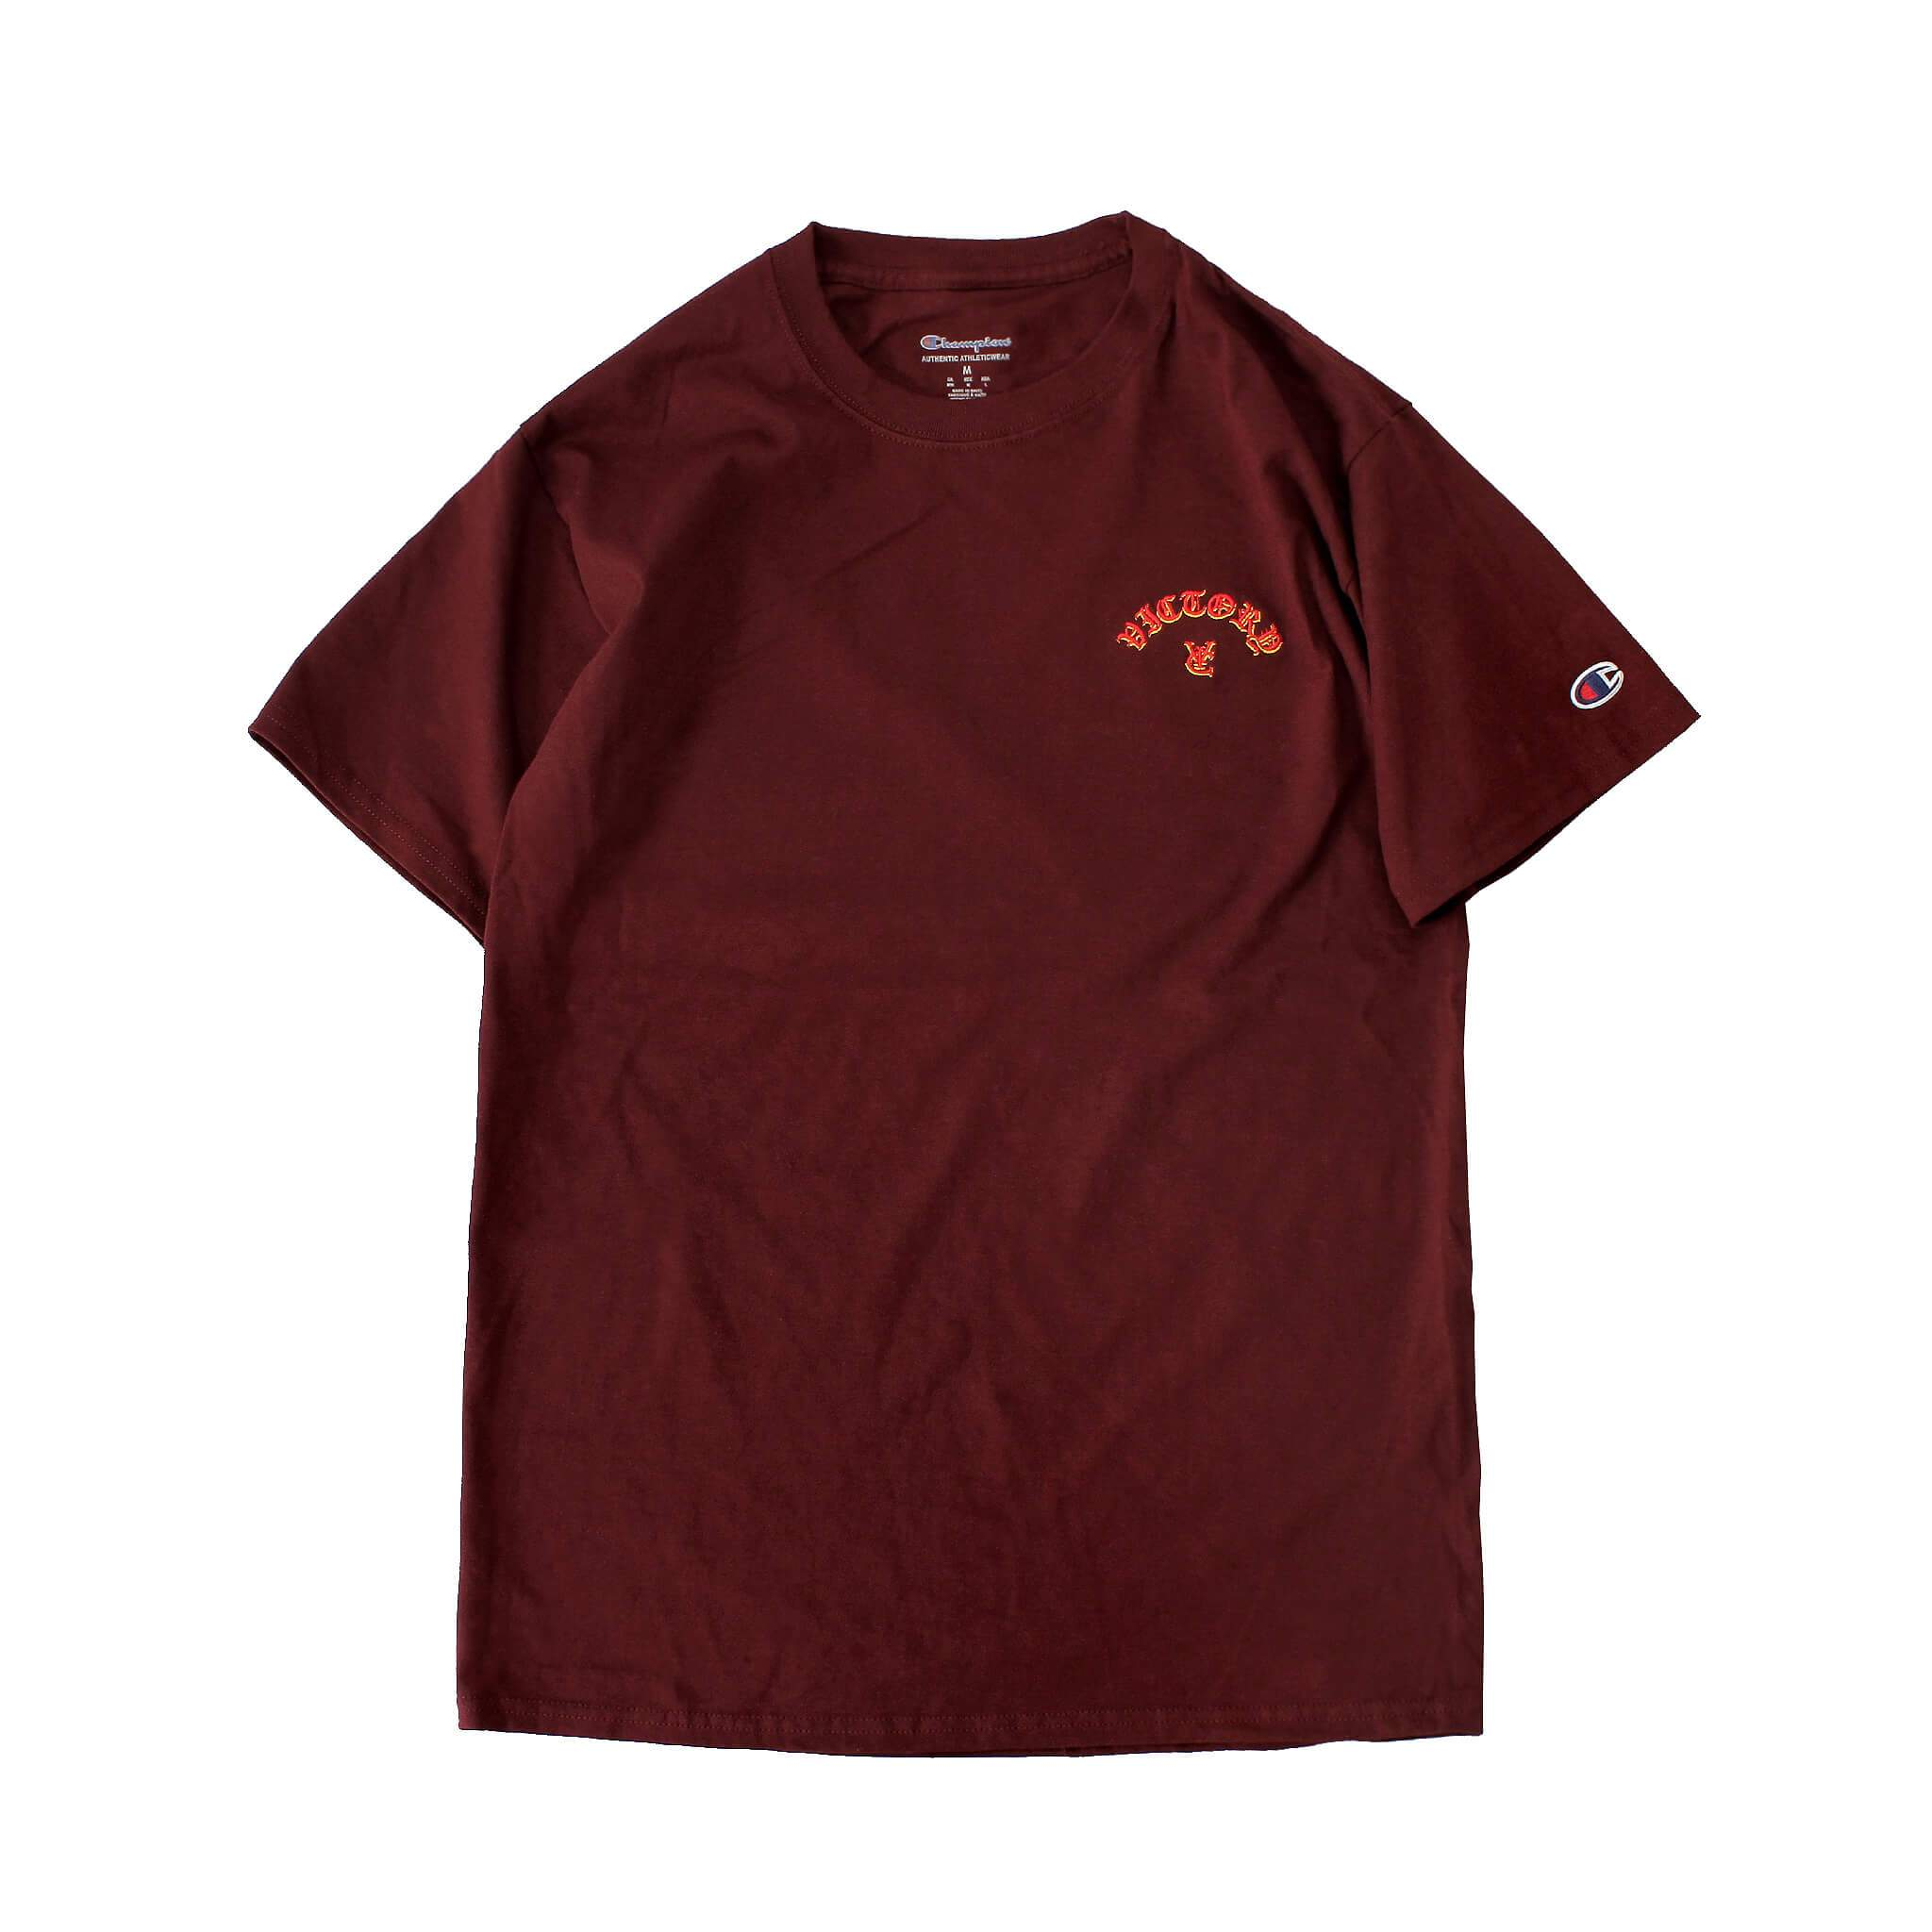 FLAME CHAMPION® TEE - MAROON